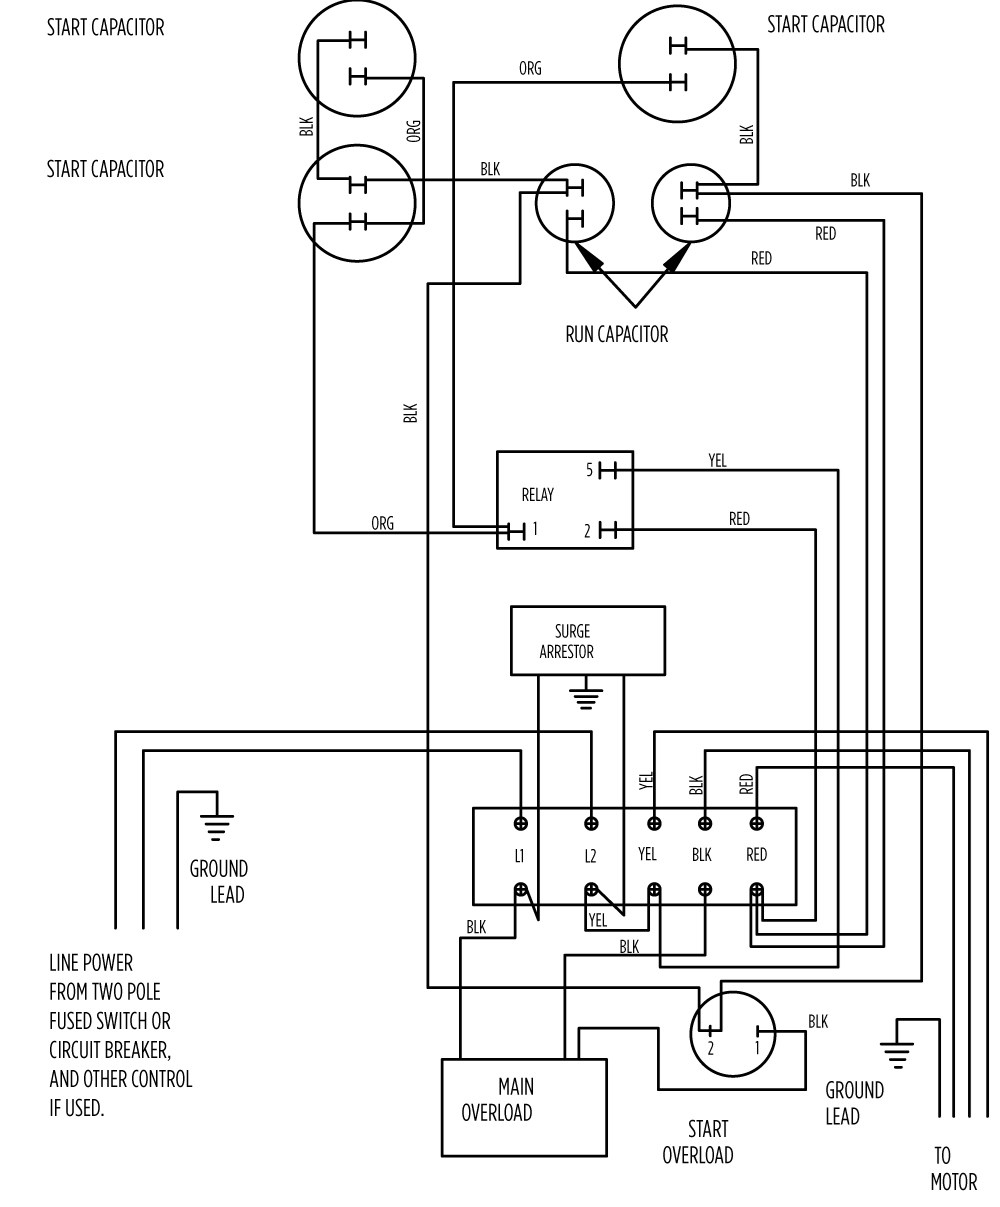 medium resolution of motor wiring diagrams likewise on 10 hp baldor motor capacitor baldor motor wiring diagrams reversible 10 hp baldor motor wiring diagram